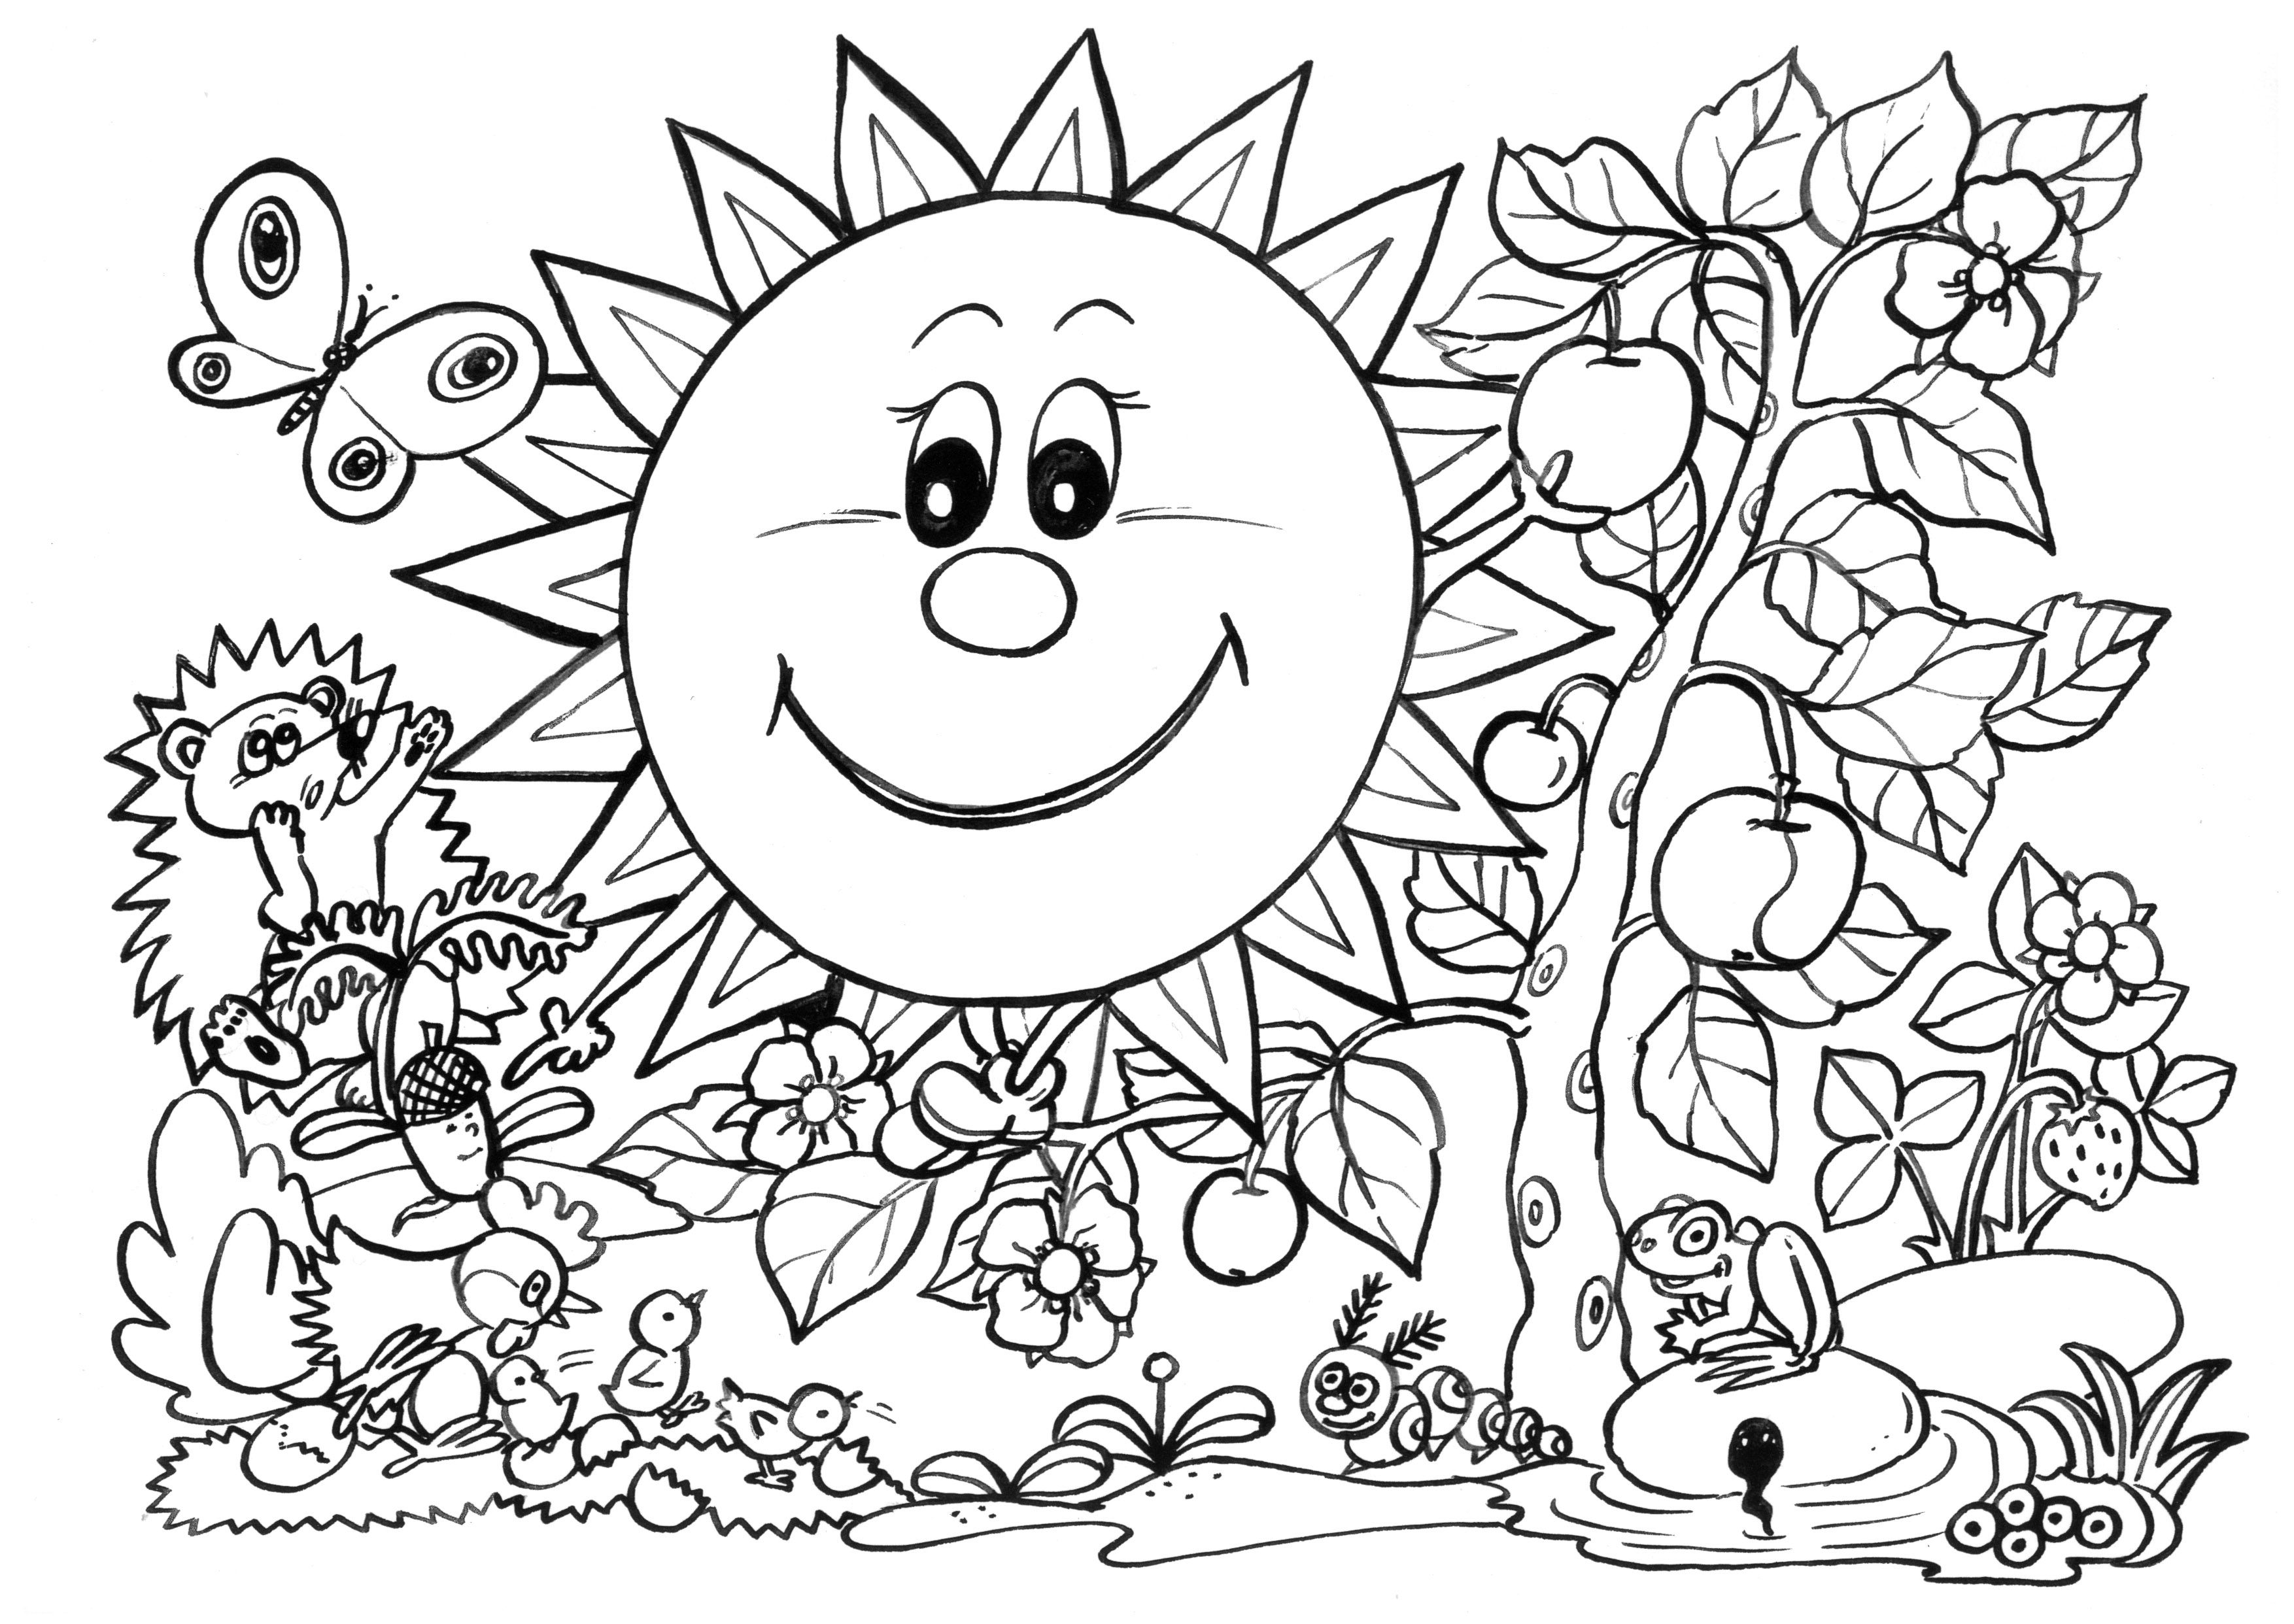 Spring Coloring Pages For Adults #c6f3e9e21 | Adults Color Too ...